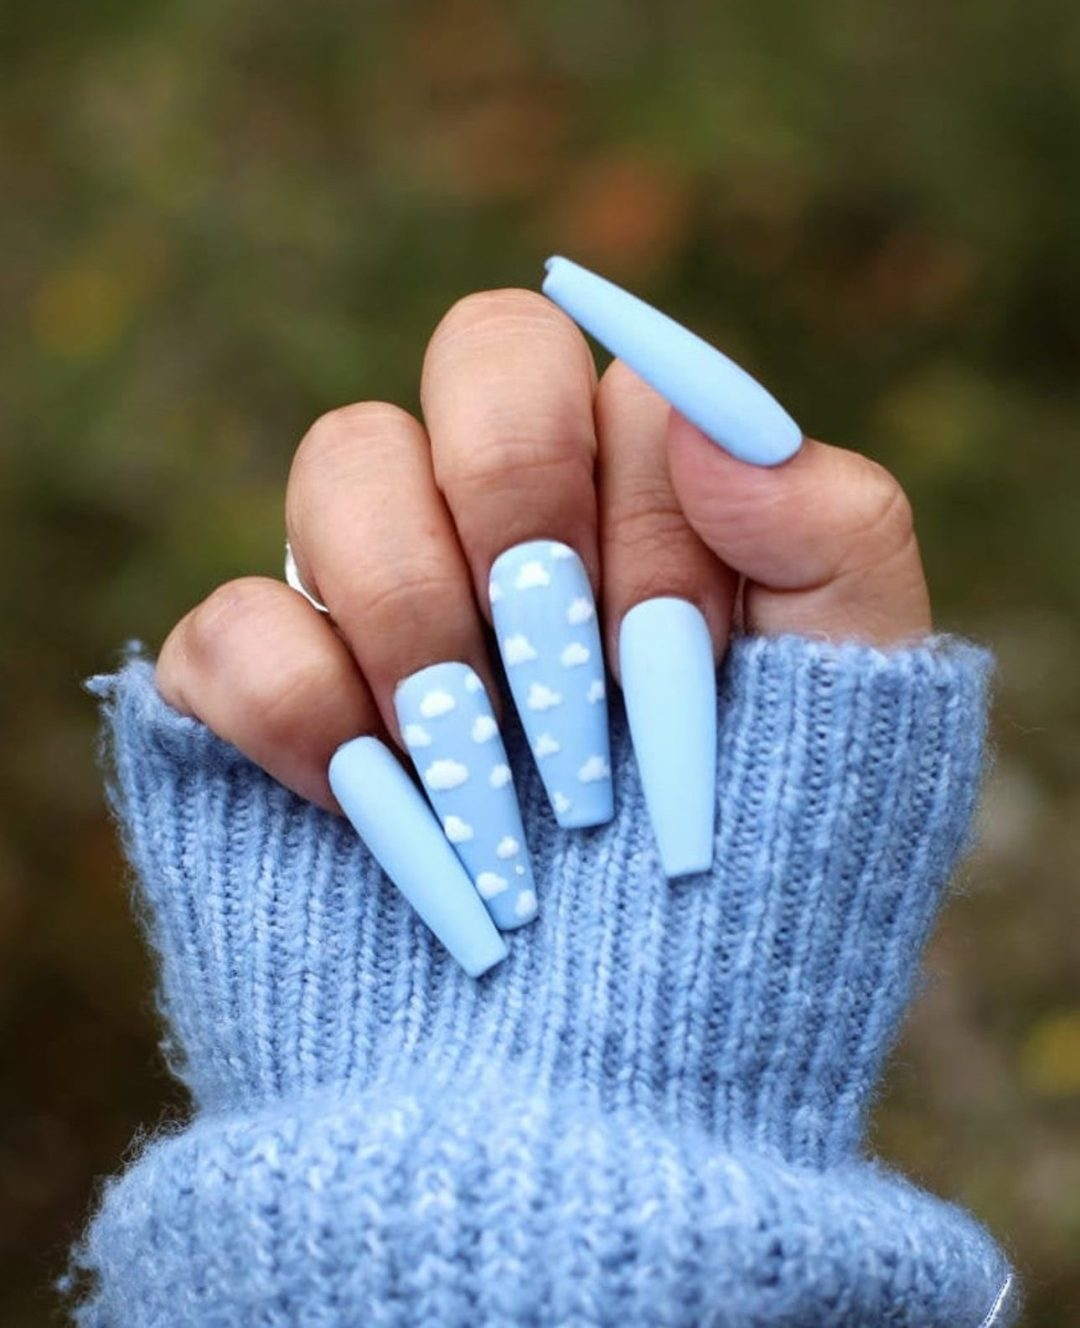 Clouds nail art and light blue nails